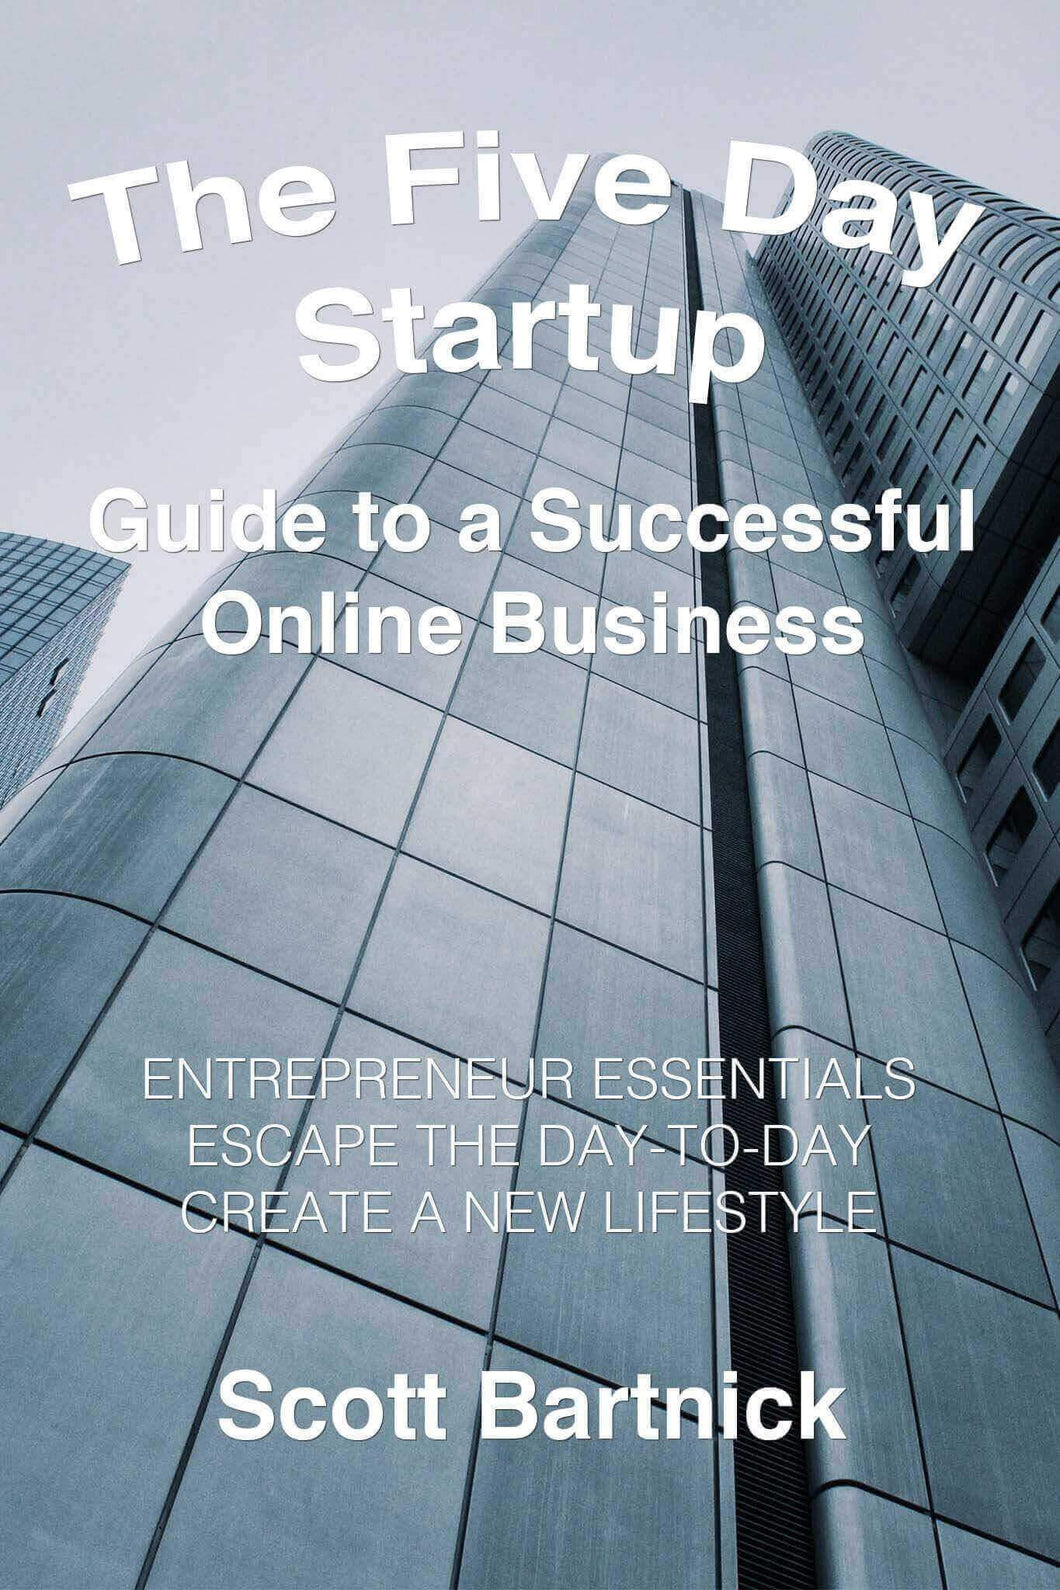 Guide to a Successful Online Business